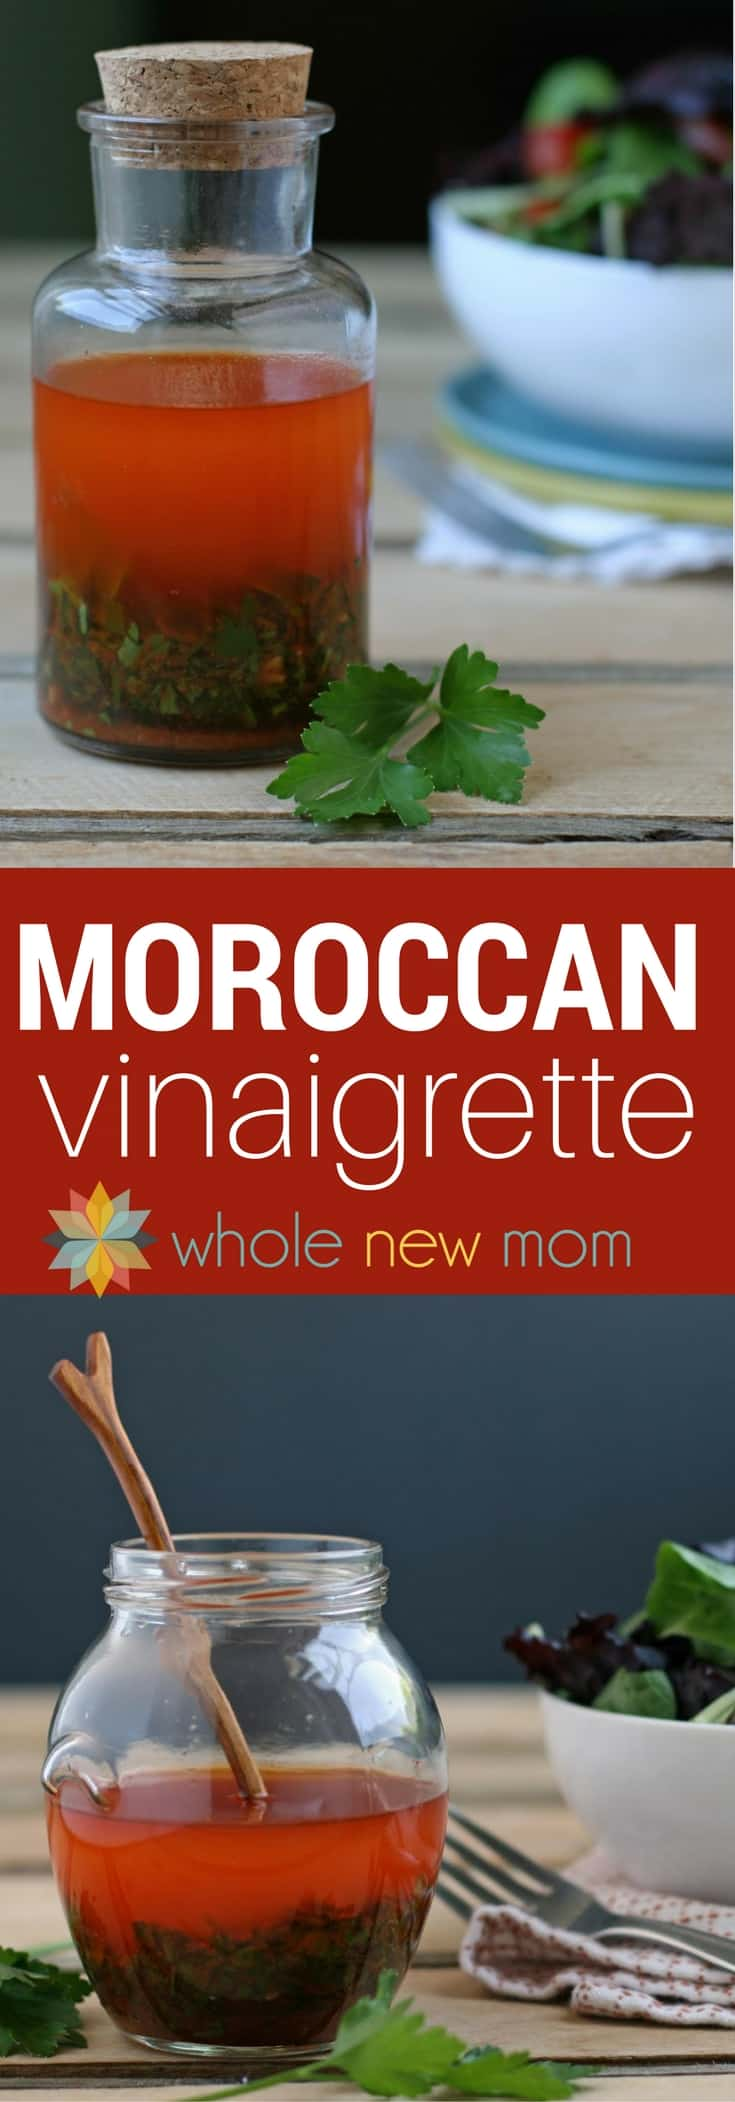 This Moroccan Vinaigrette is on our table for every meal--it's that good! And it's not just for salads. It's great on sides & main dishes too!